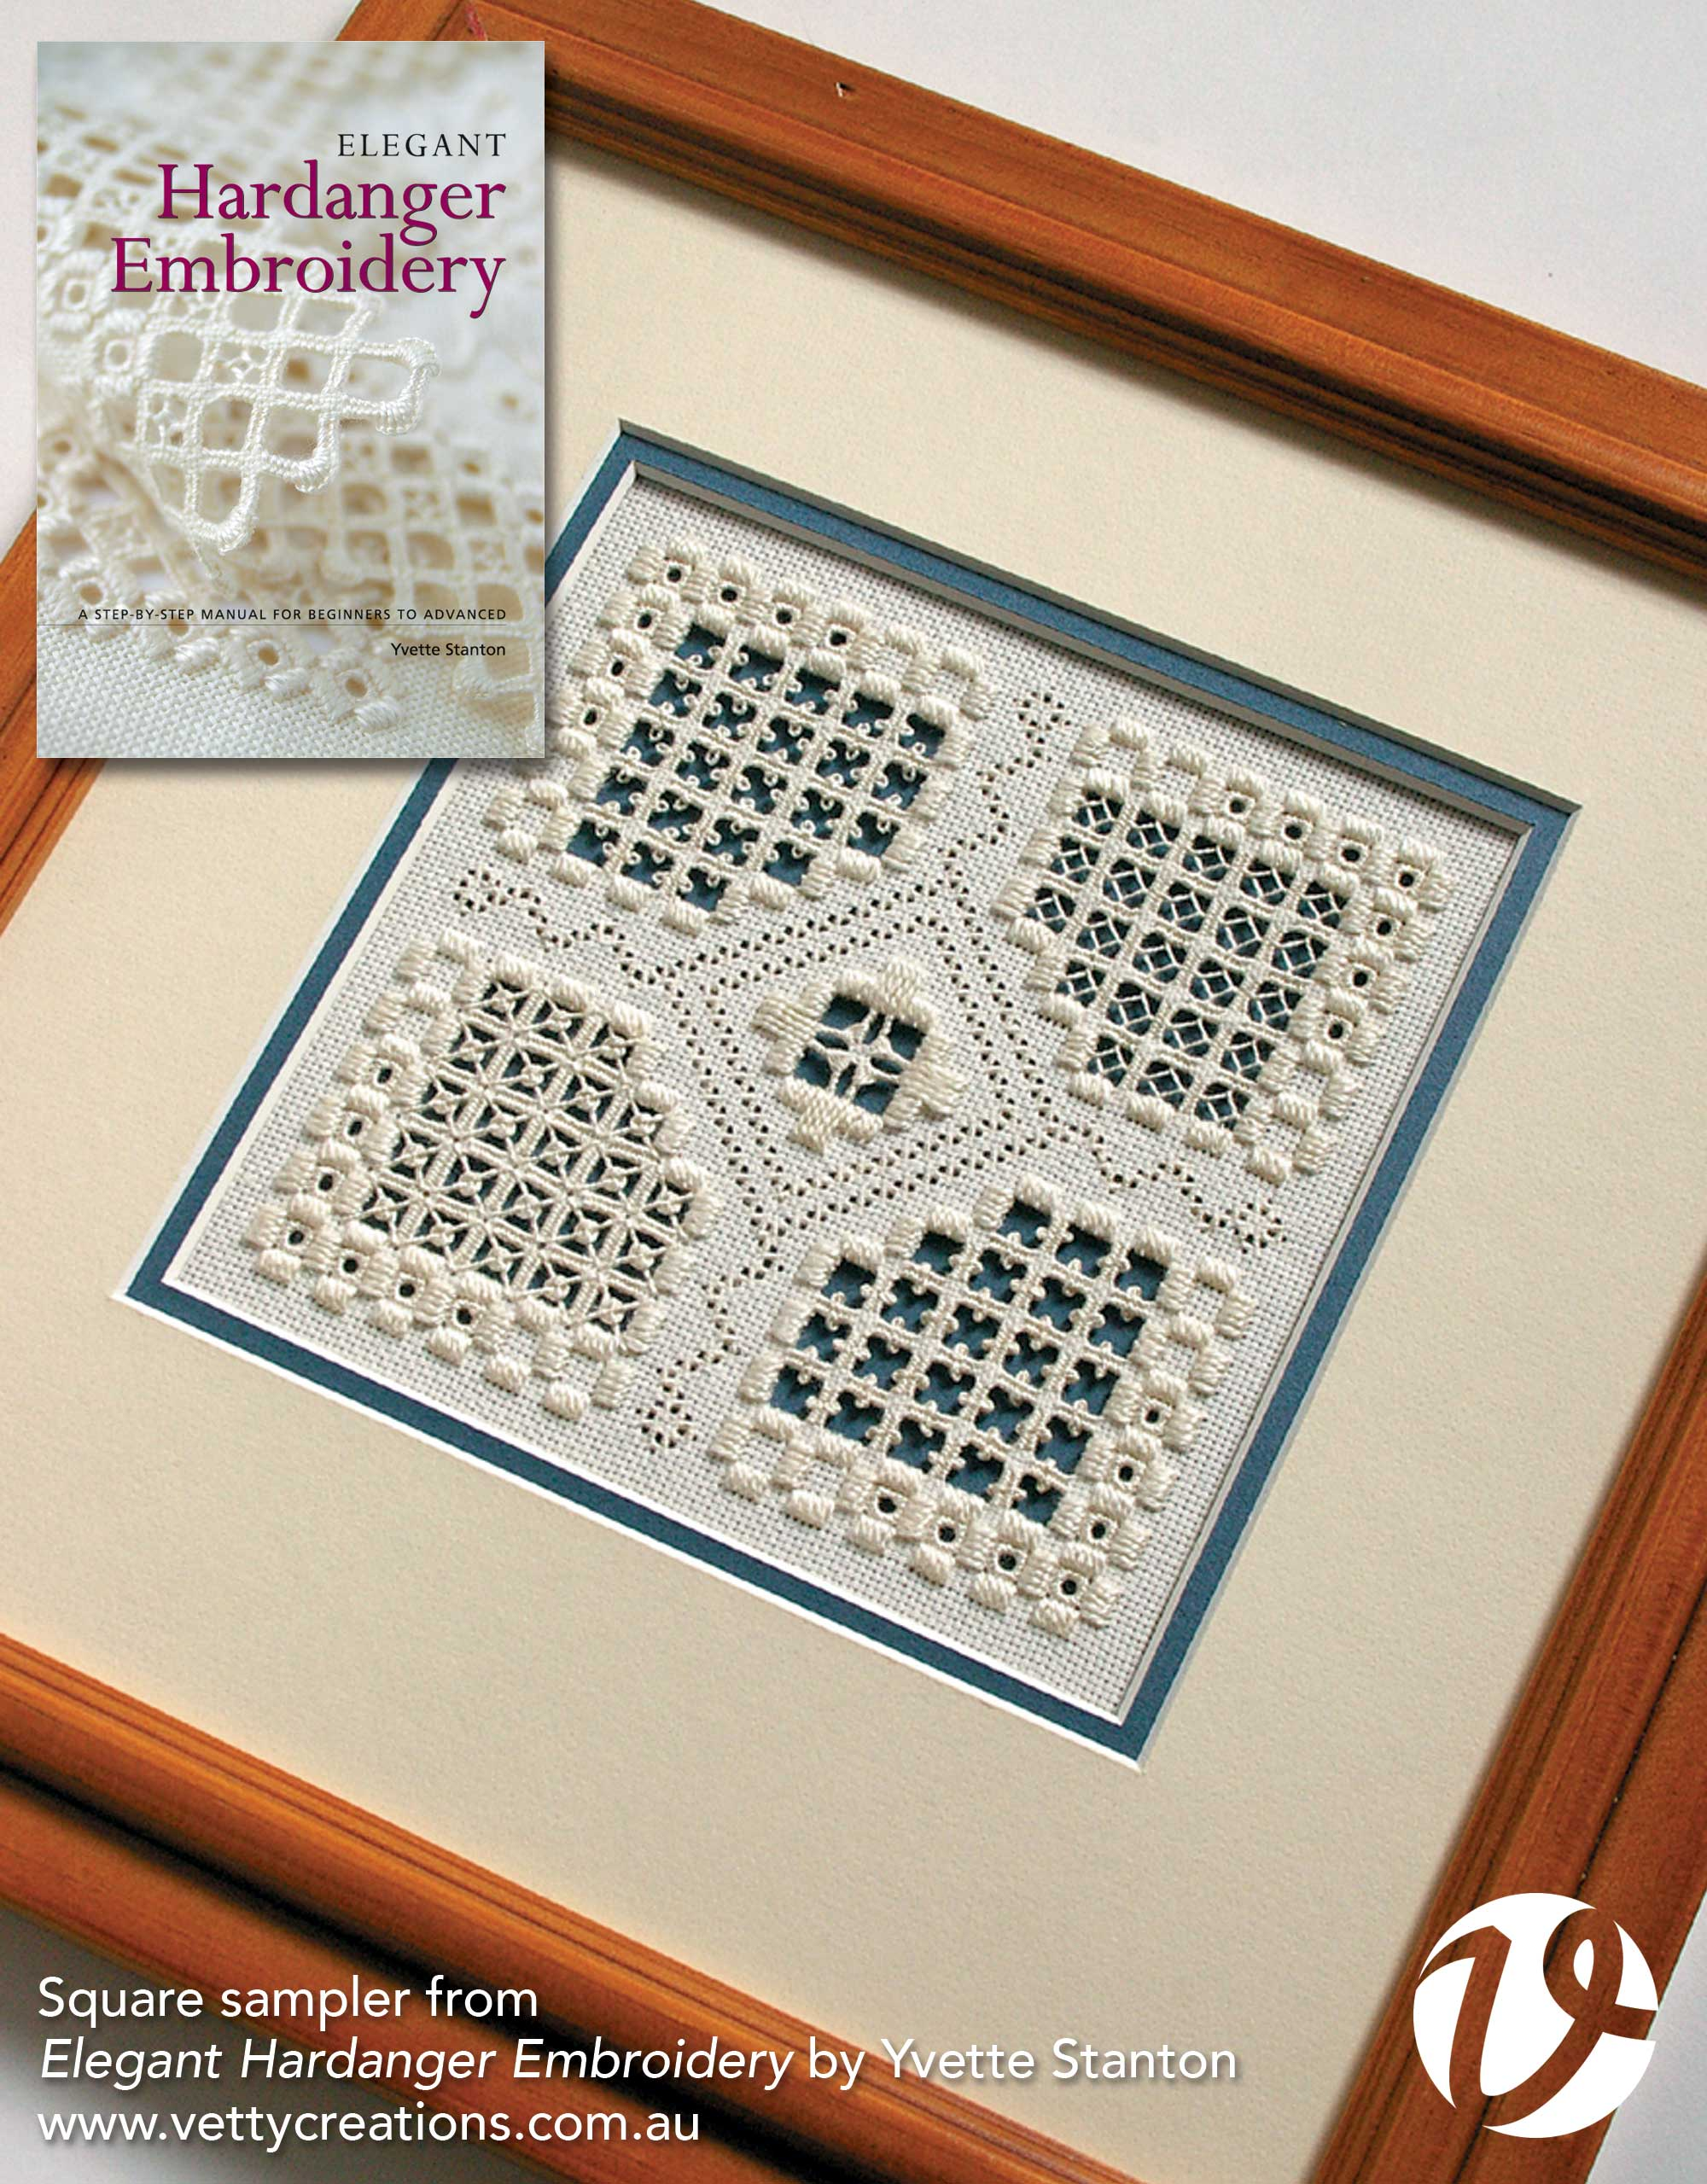 Square Sampler from Elegant Hardanger Embroidery